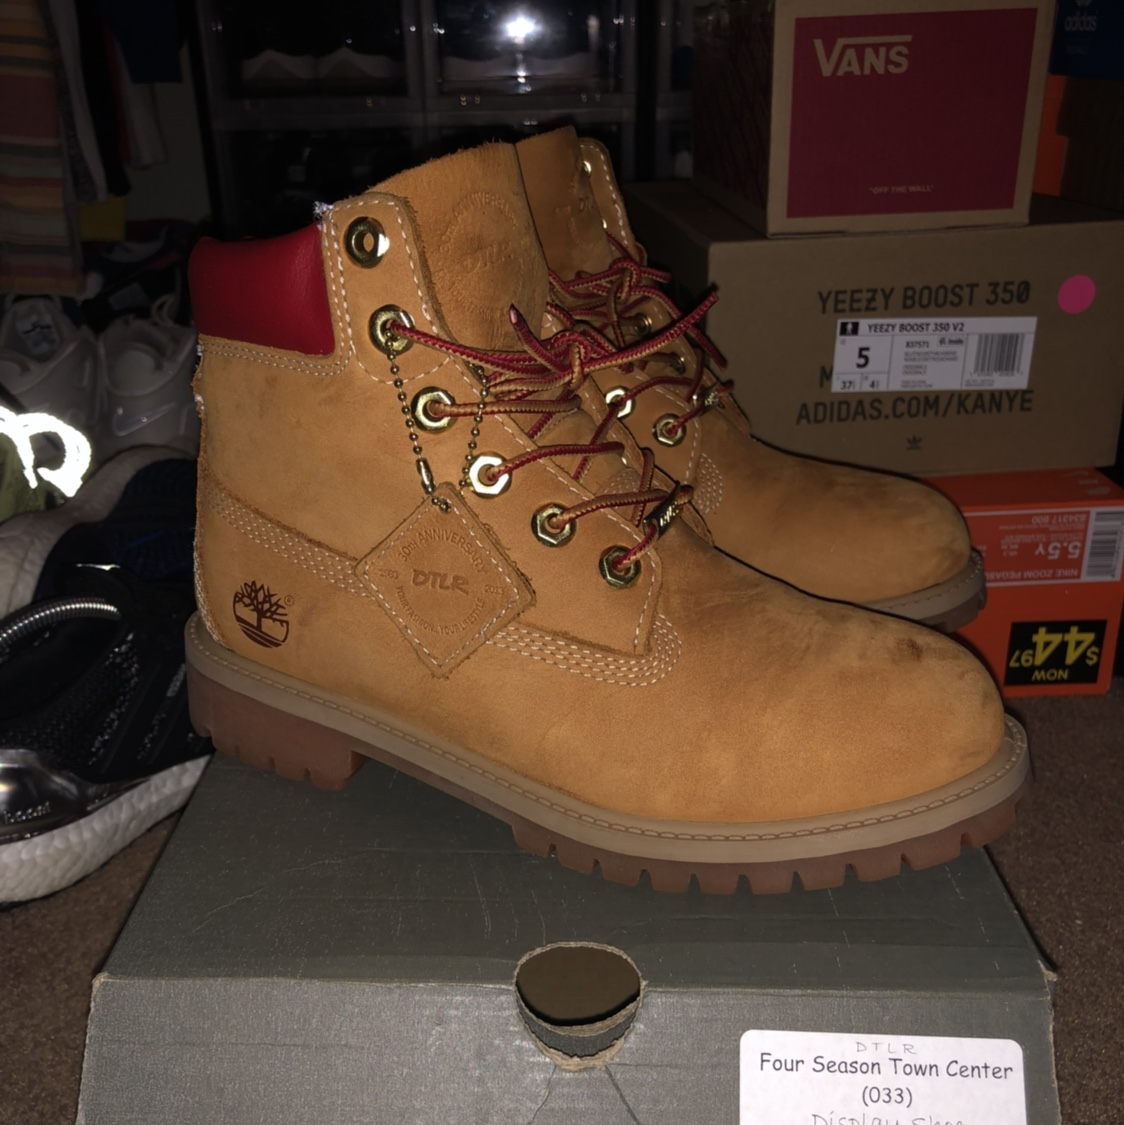 Exclusif Promotions Timberland Bottines Femme Timberland